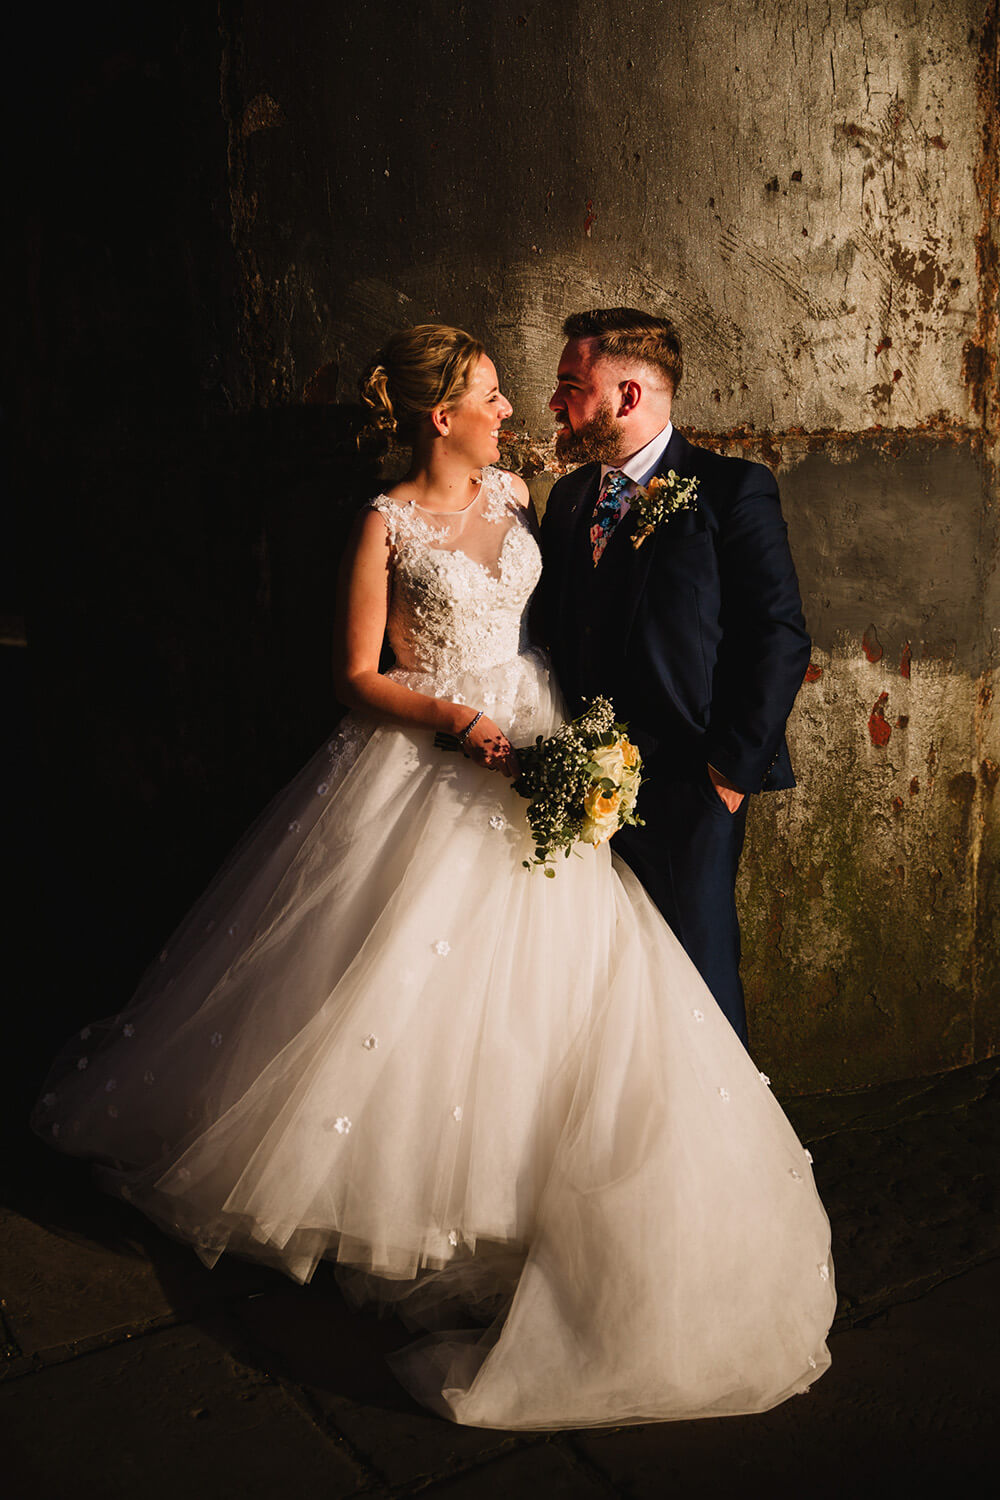 Laura and Liam at The Castlefield Rooms, Deansgate